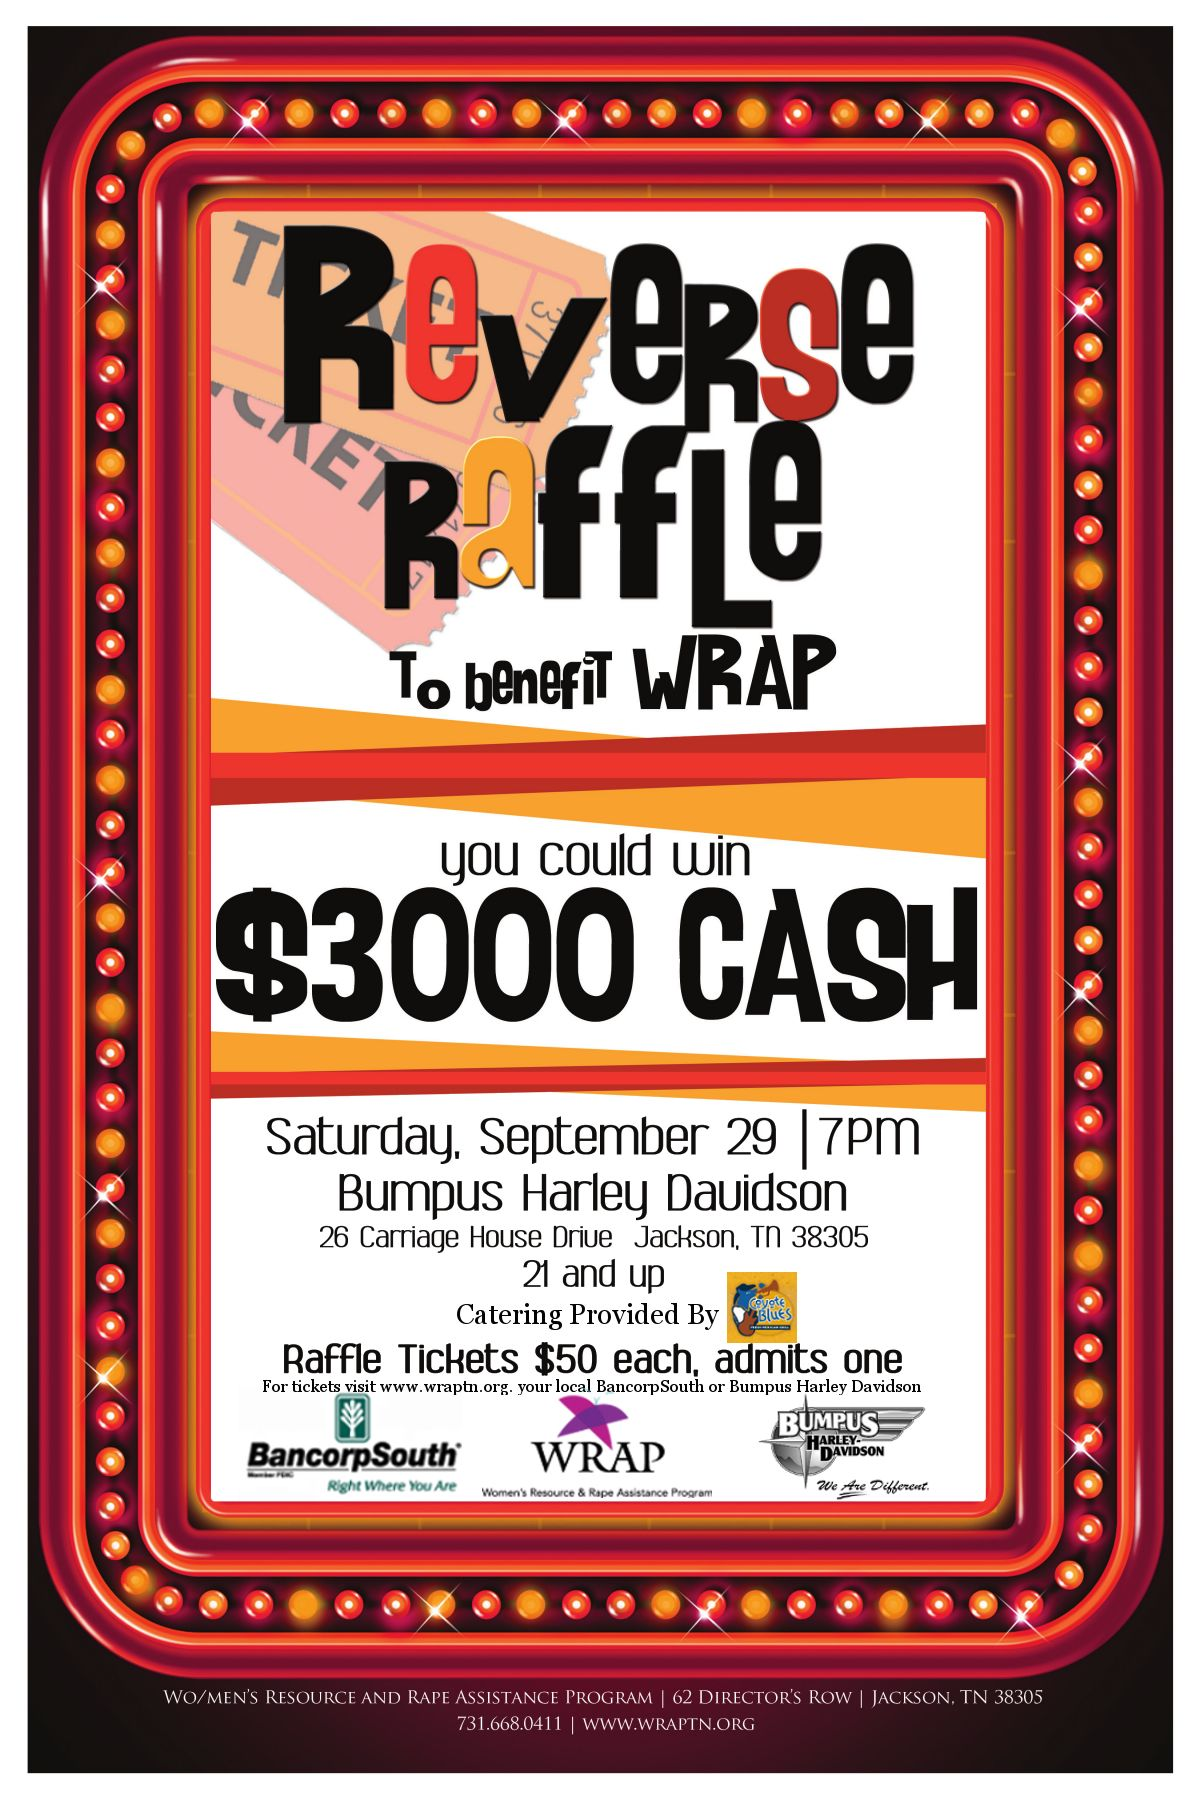 come out and help us help our clients in this reverse raffle were going to have a great time